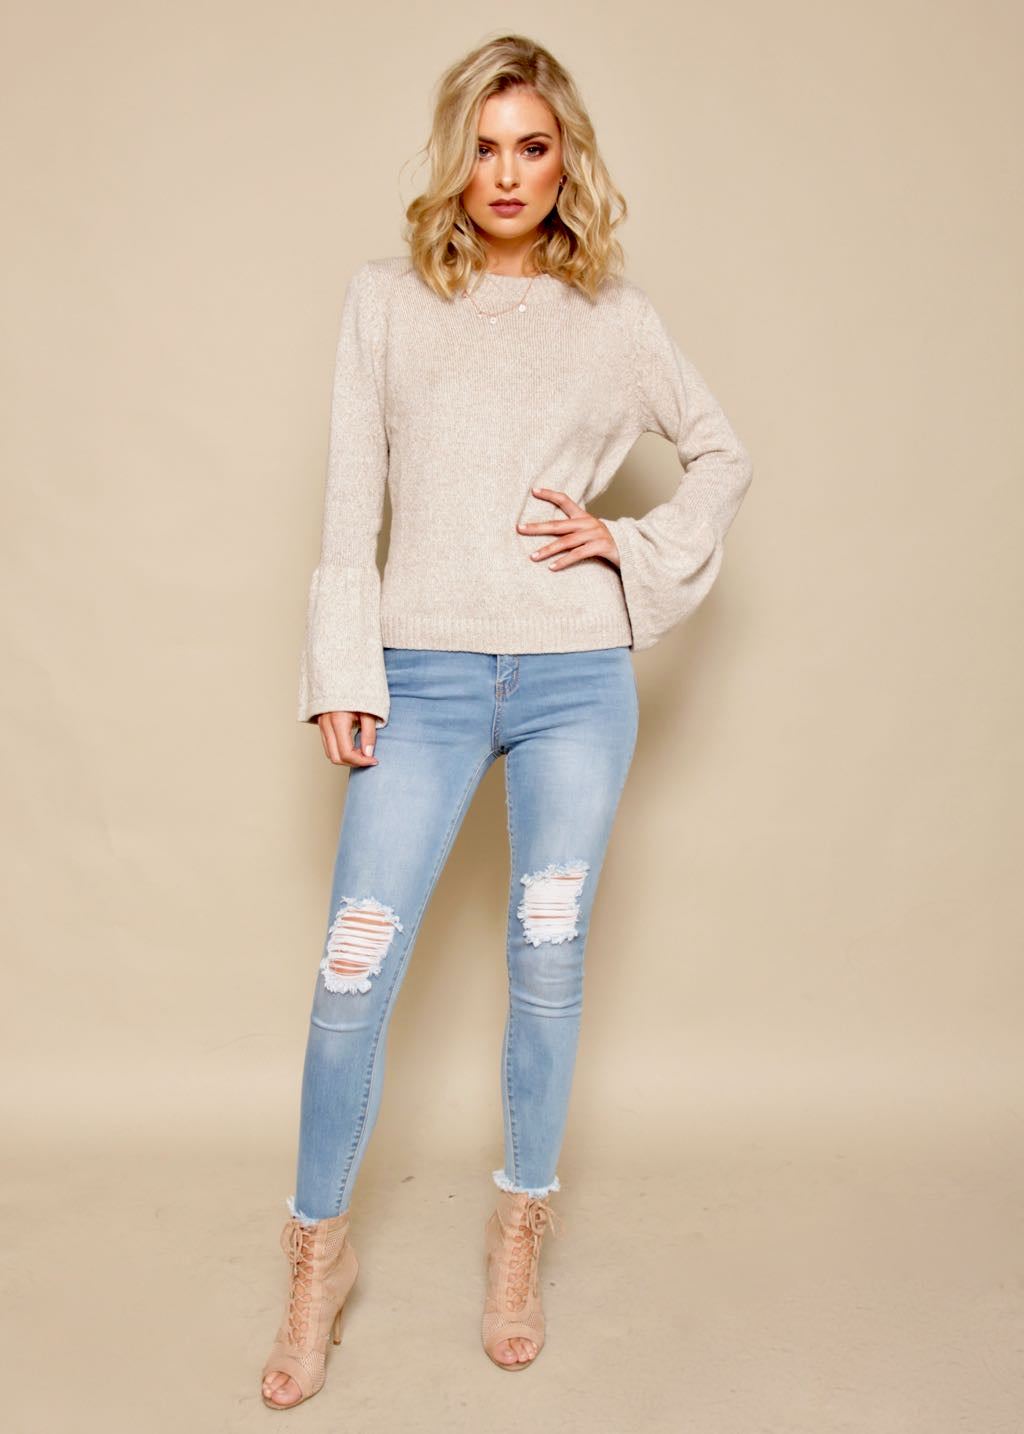 Downtown Drive Sweater - Beige